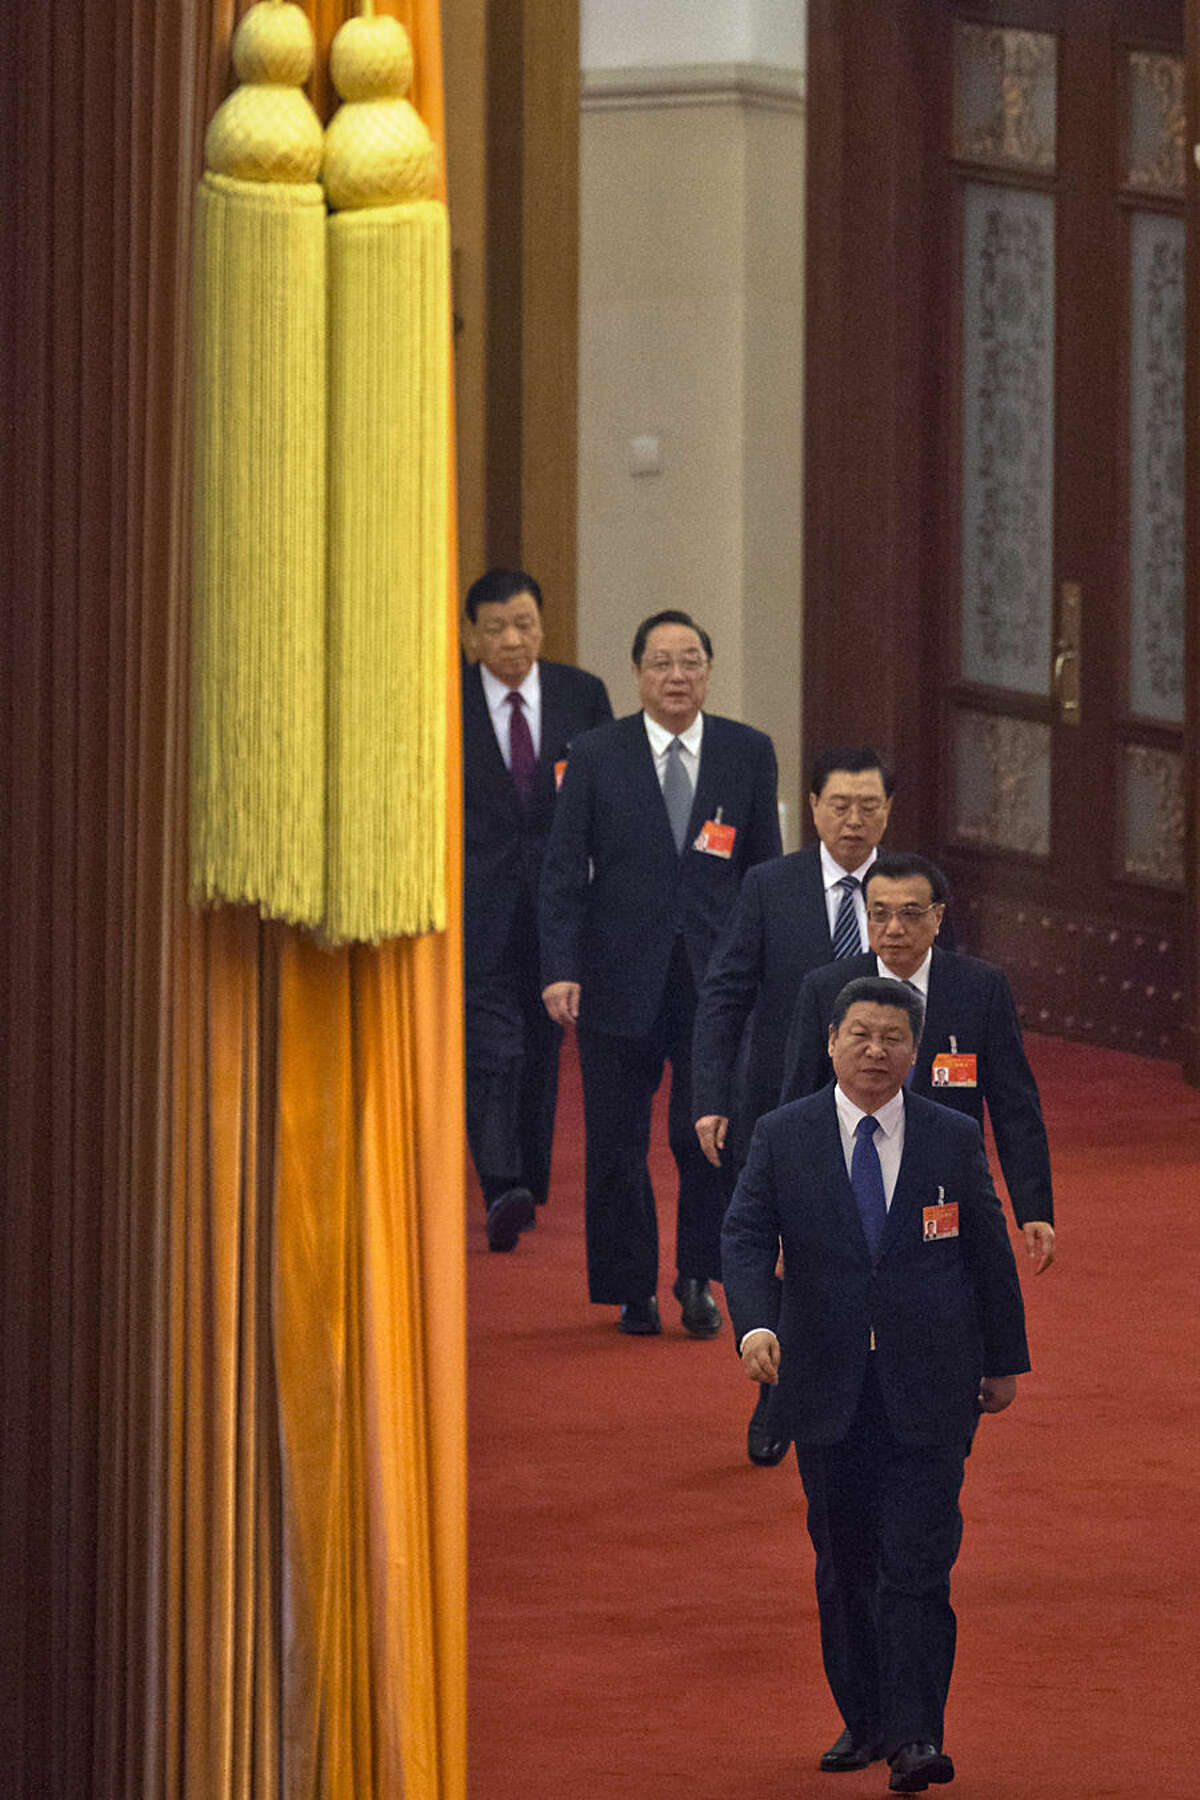 Chinese President Xi Jinping, front, leads the members of the Politburo Standing Committee as they arrive for a plenary session of the National People's Congress in the Great Hall of the People in Beijing Thursday, March 12, 2015. Behind Xi is Chinese Premier Li Keqiang and Politburo members Zhang Dejiang, Yu Zhengsheng and Liu Yunshan. (AP Photo/Ng Han Guan)